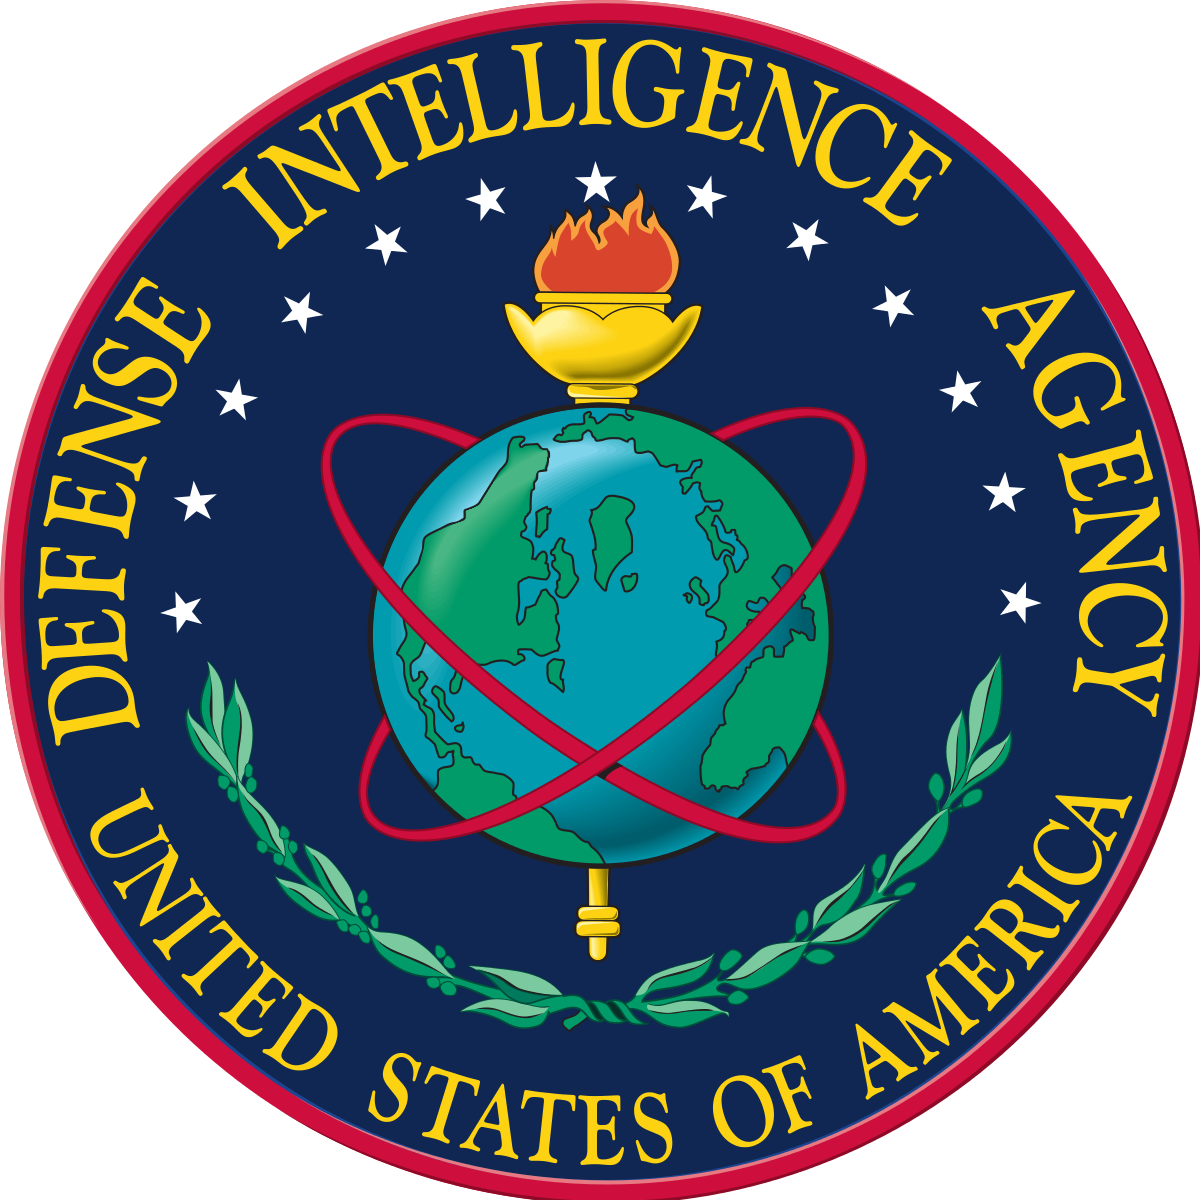 Defense Intelligence Agency (DIA)